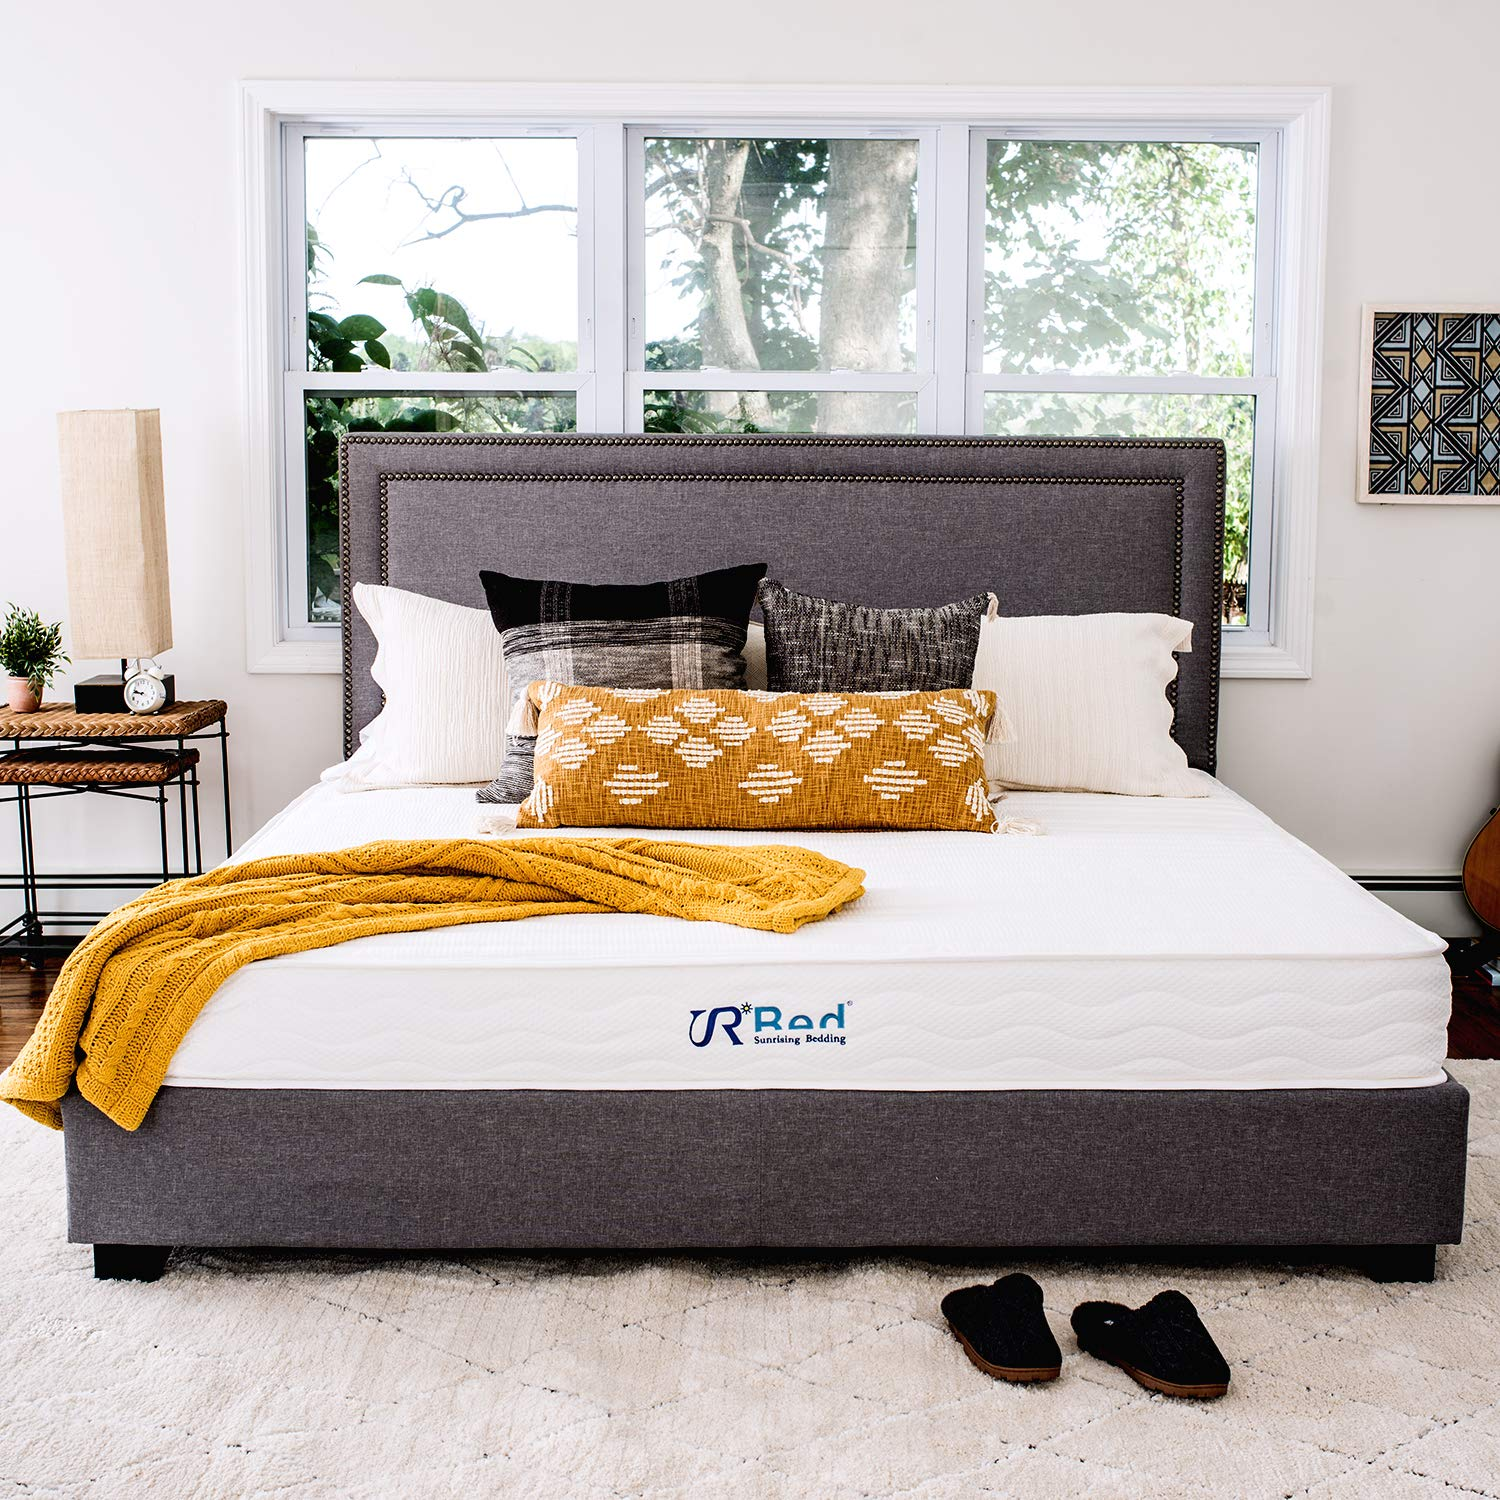 """Sunrising Bedding 8"""" Natural Latex Twin Mattress, Individually Encased Pocket Coil, Firm, Supportive, Naturally Cooling, Non-Toxic Organic Mattress, 120-Night Risk-Free Trial, 20-Year Warranty"""